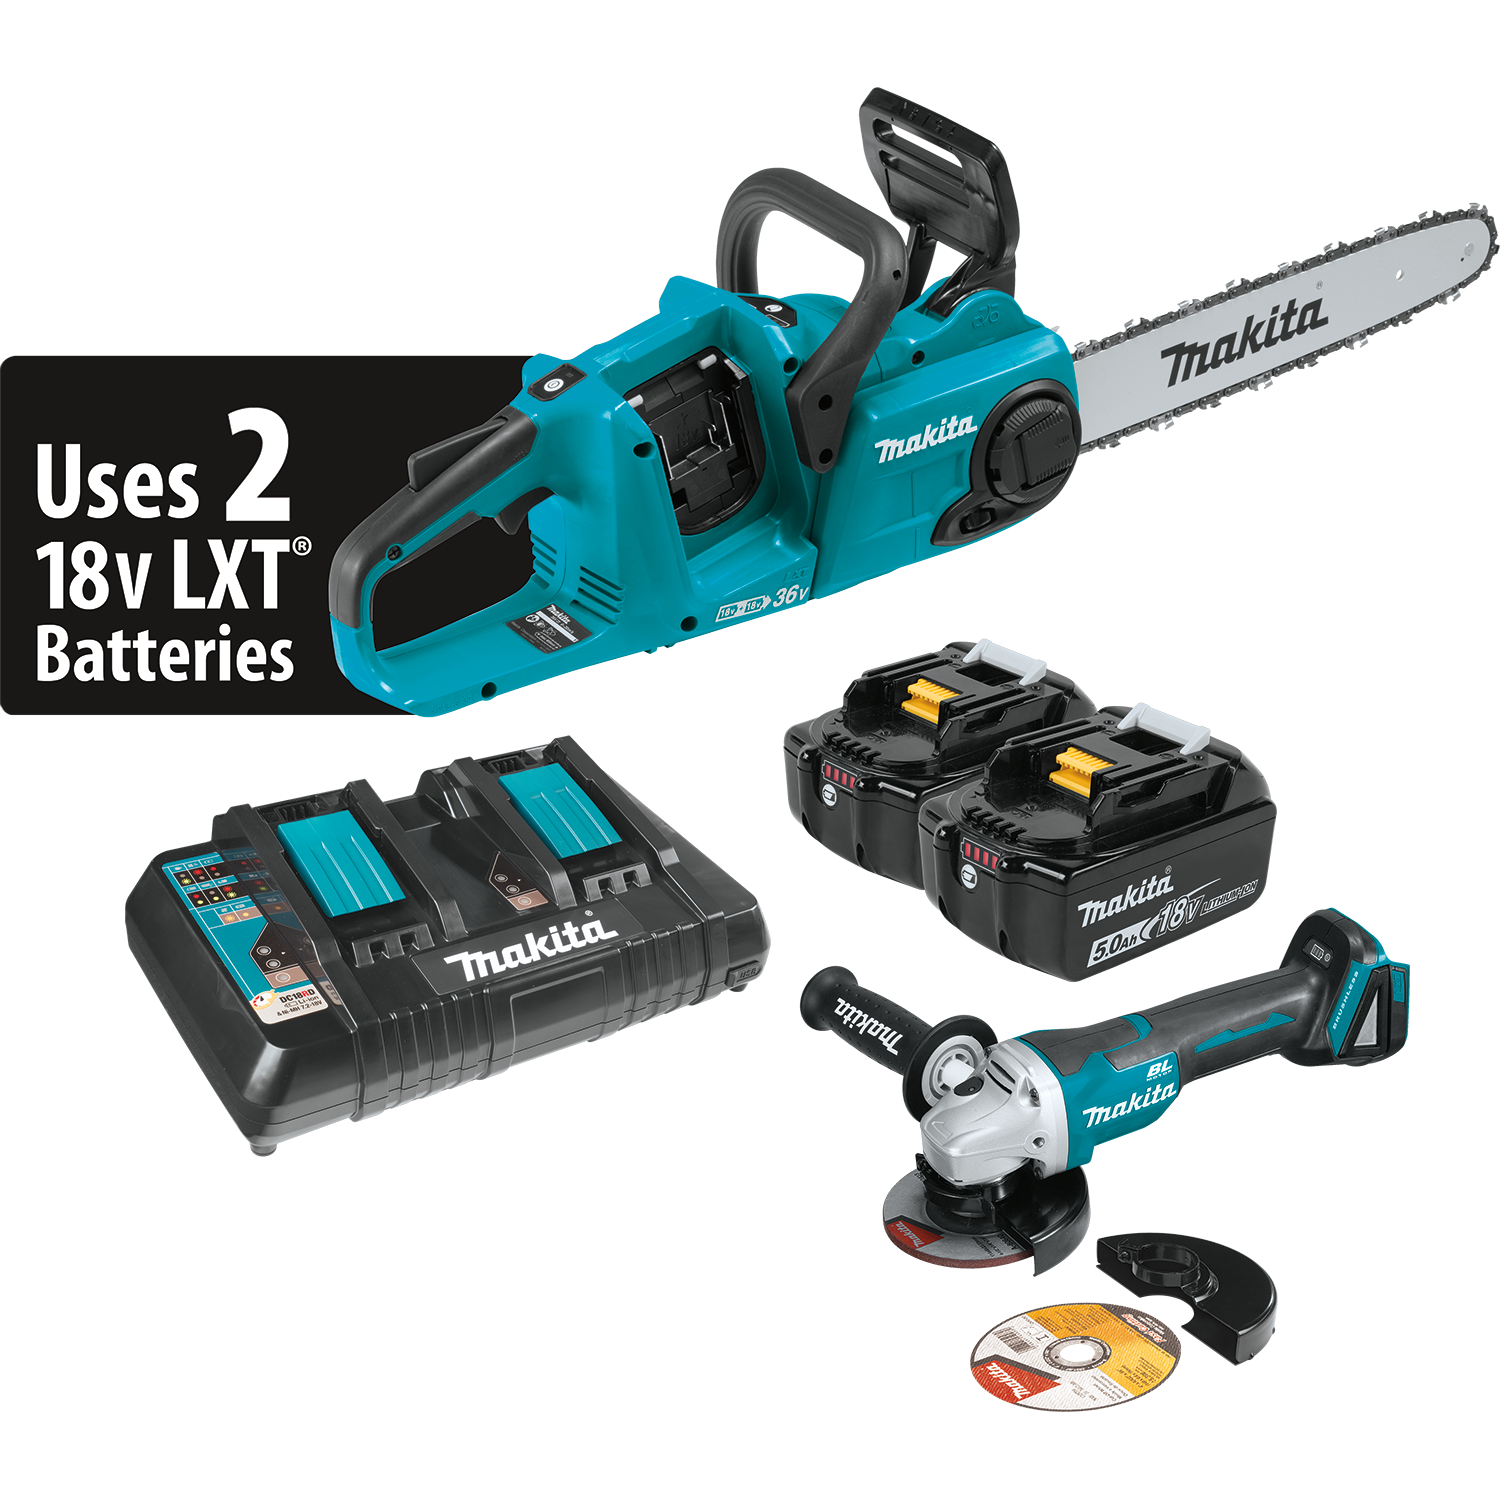 Makita usa product details xcu03pt xcu03ptx1 18v x2 36v lxt brushless 14 chain saw kit and grinder greentooth Choice Image